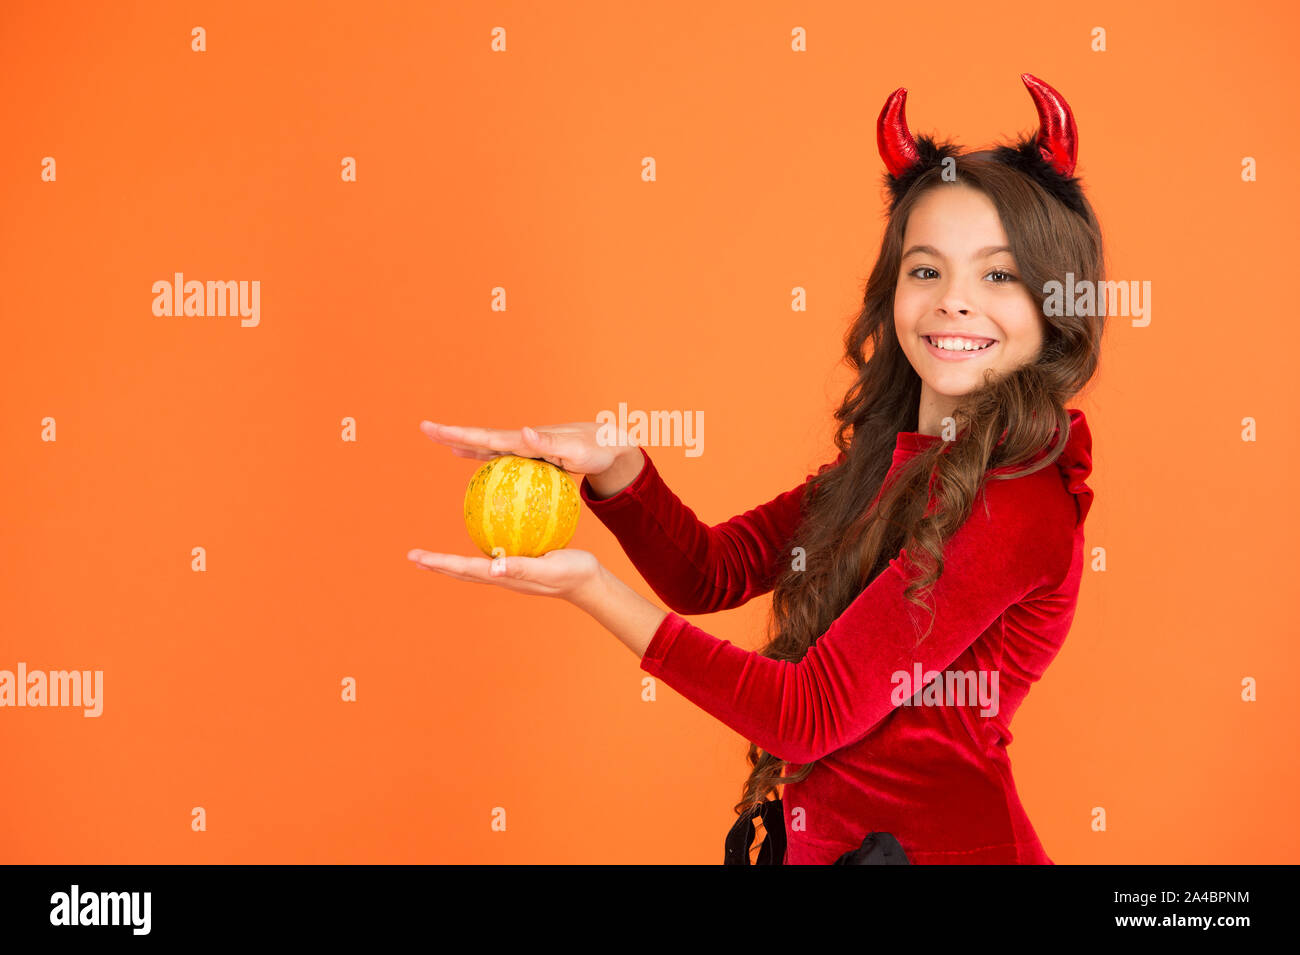 Halloween Party Traditions.Jack Lantern Concept Prepare Decorations Small Child Imp Style Accessory Hold Pumpkin Halloween Party Halloween Traditions Autumn Holiday Little Girl Cute Small Horns Celebrate Halloween Stock Photo Alamy